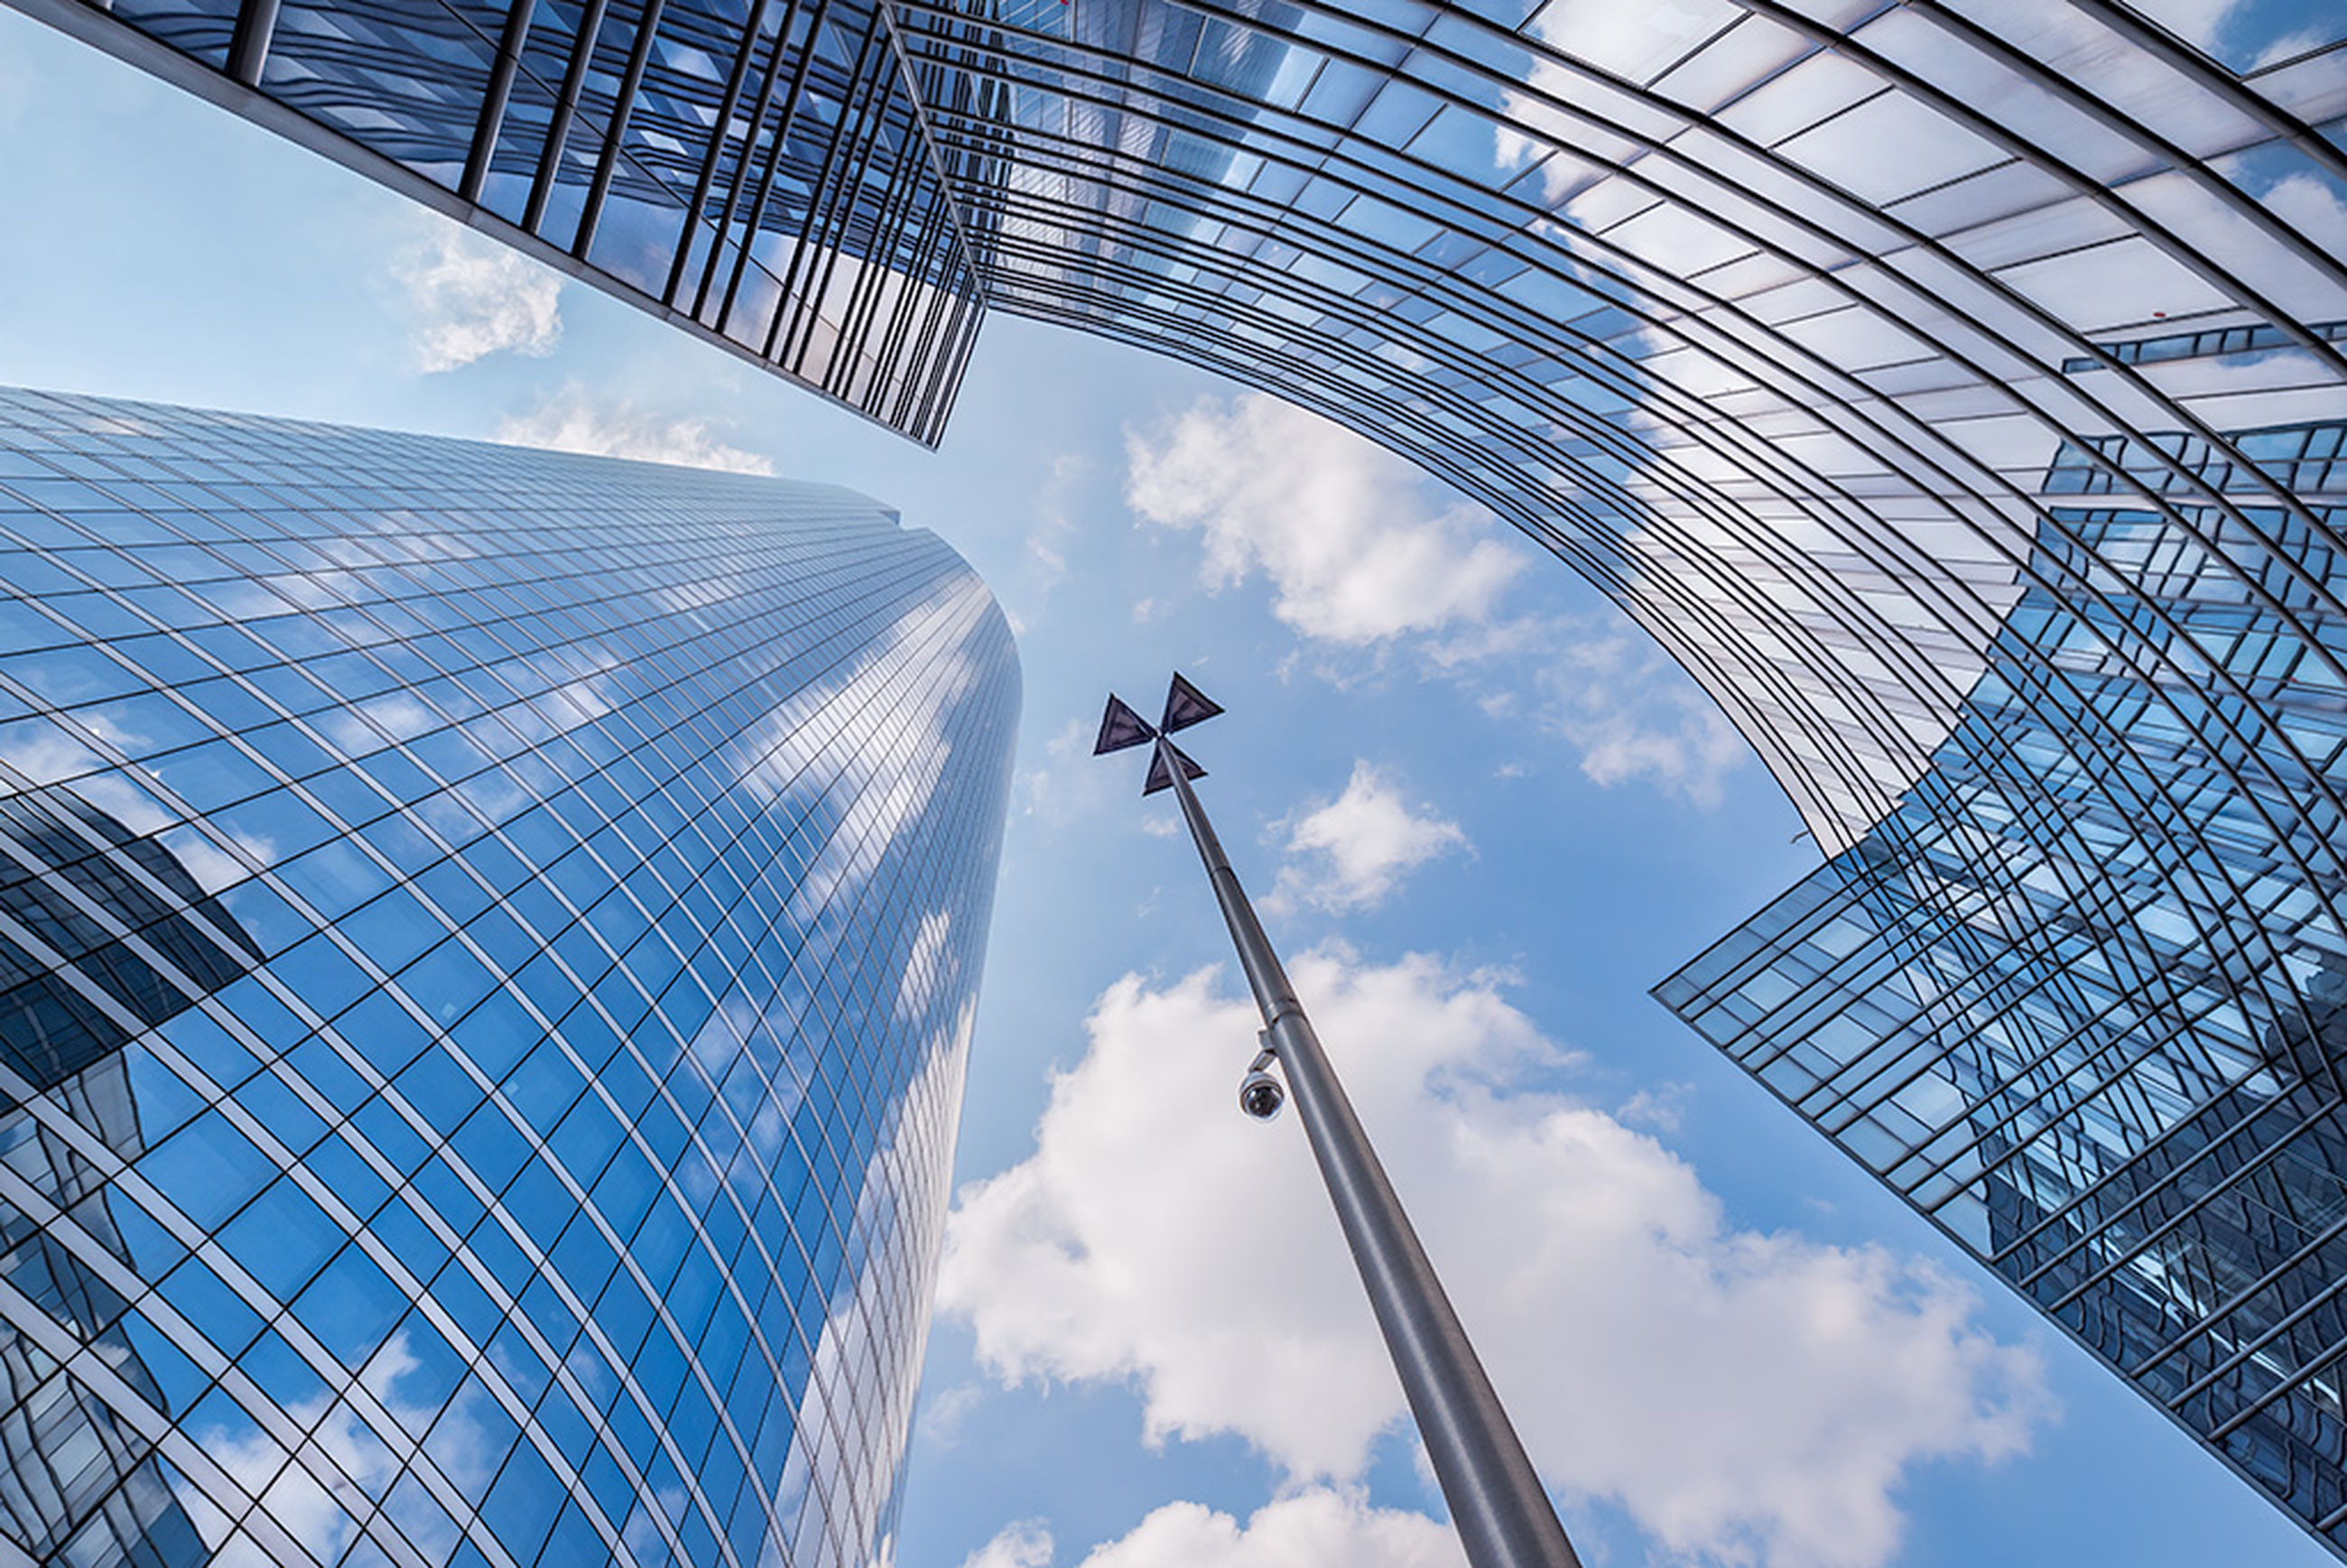 architecture, cloud - sky, low angle view, sky, built structure, building exterior, building, tall - high, office building exterior, nature, city, office, skyscraper, travel, tower, modern, day, air vehicle, glass - material, flying, no people, outdoors, directly below, financial district, aerospace industry